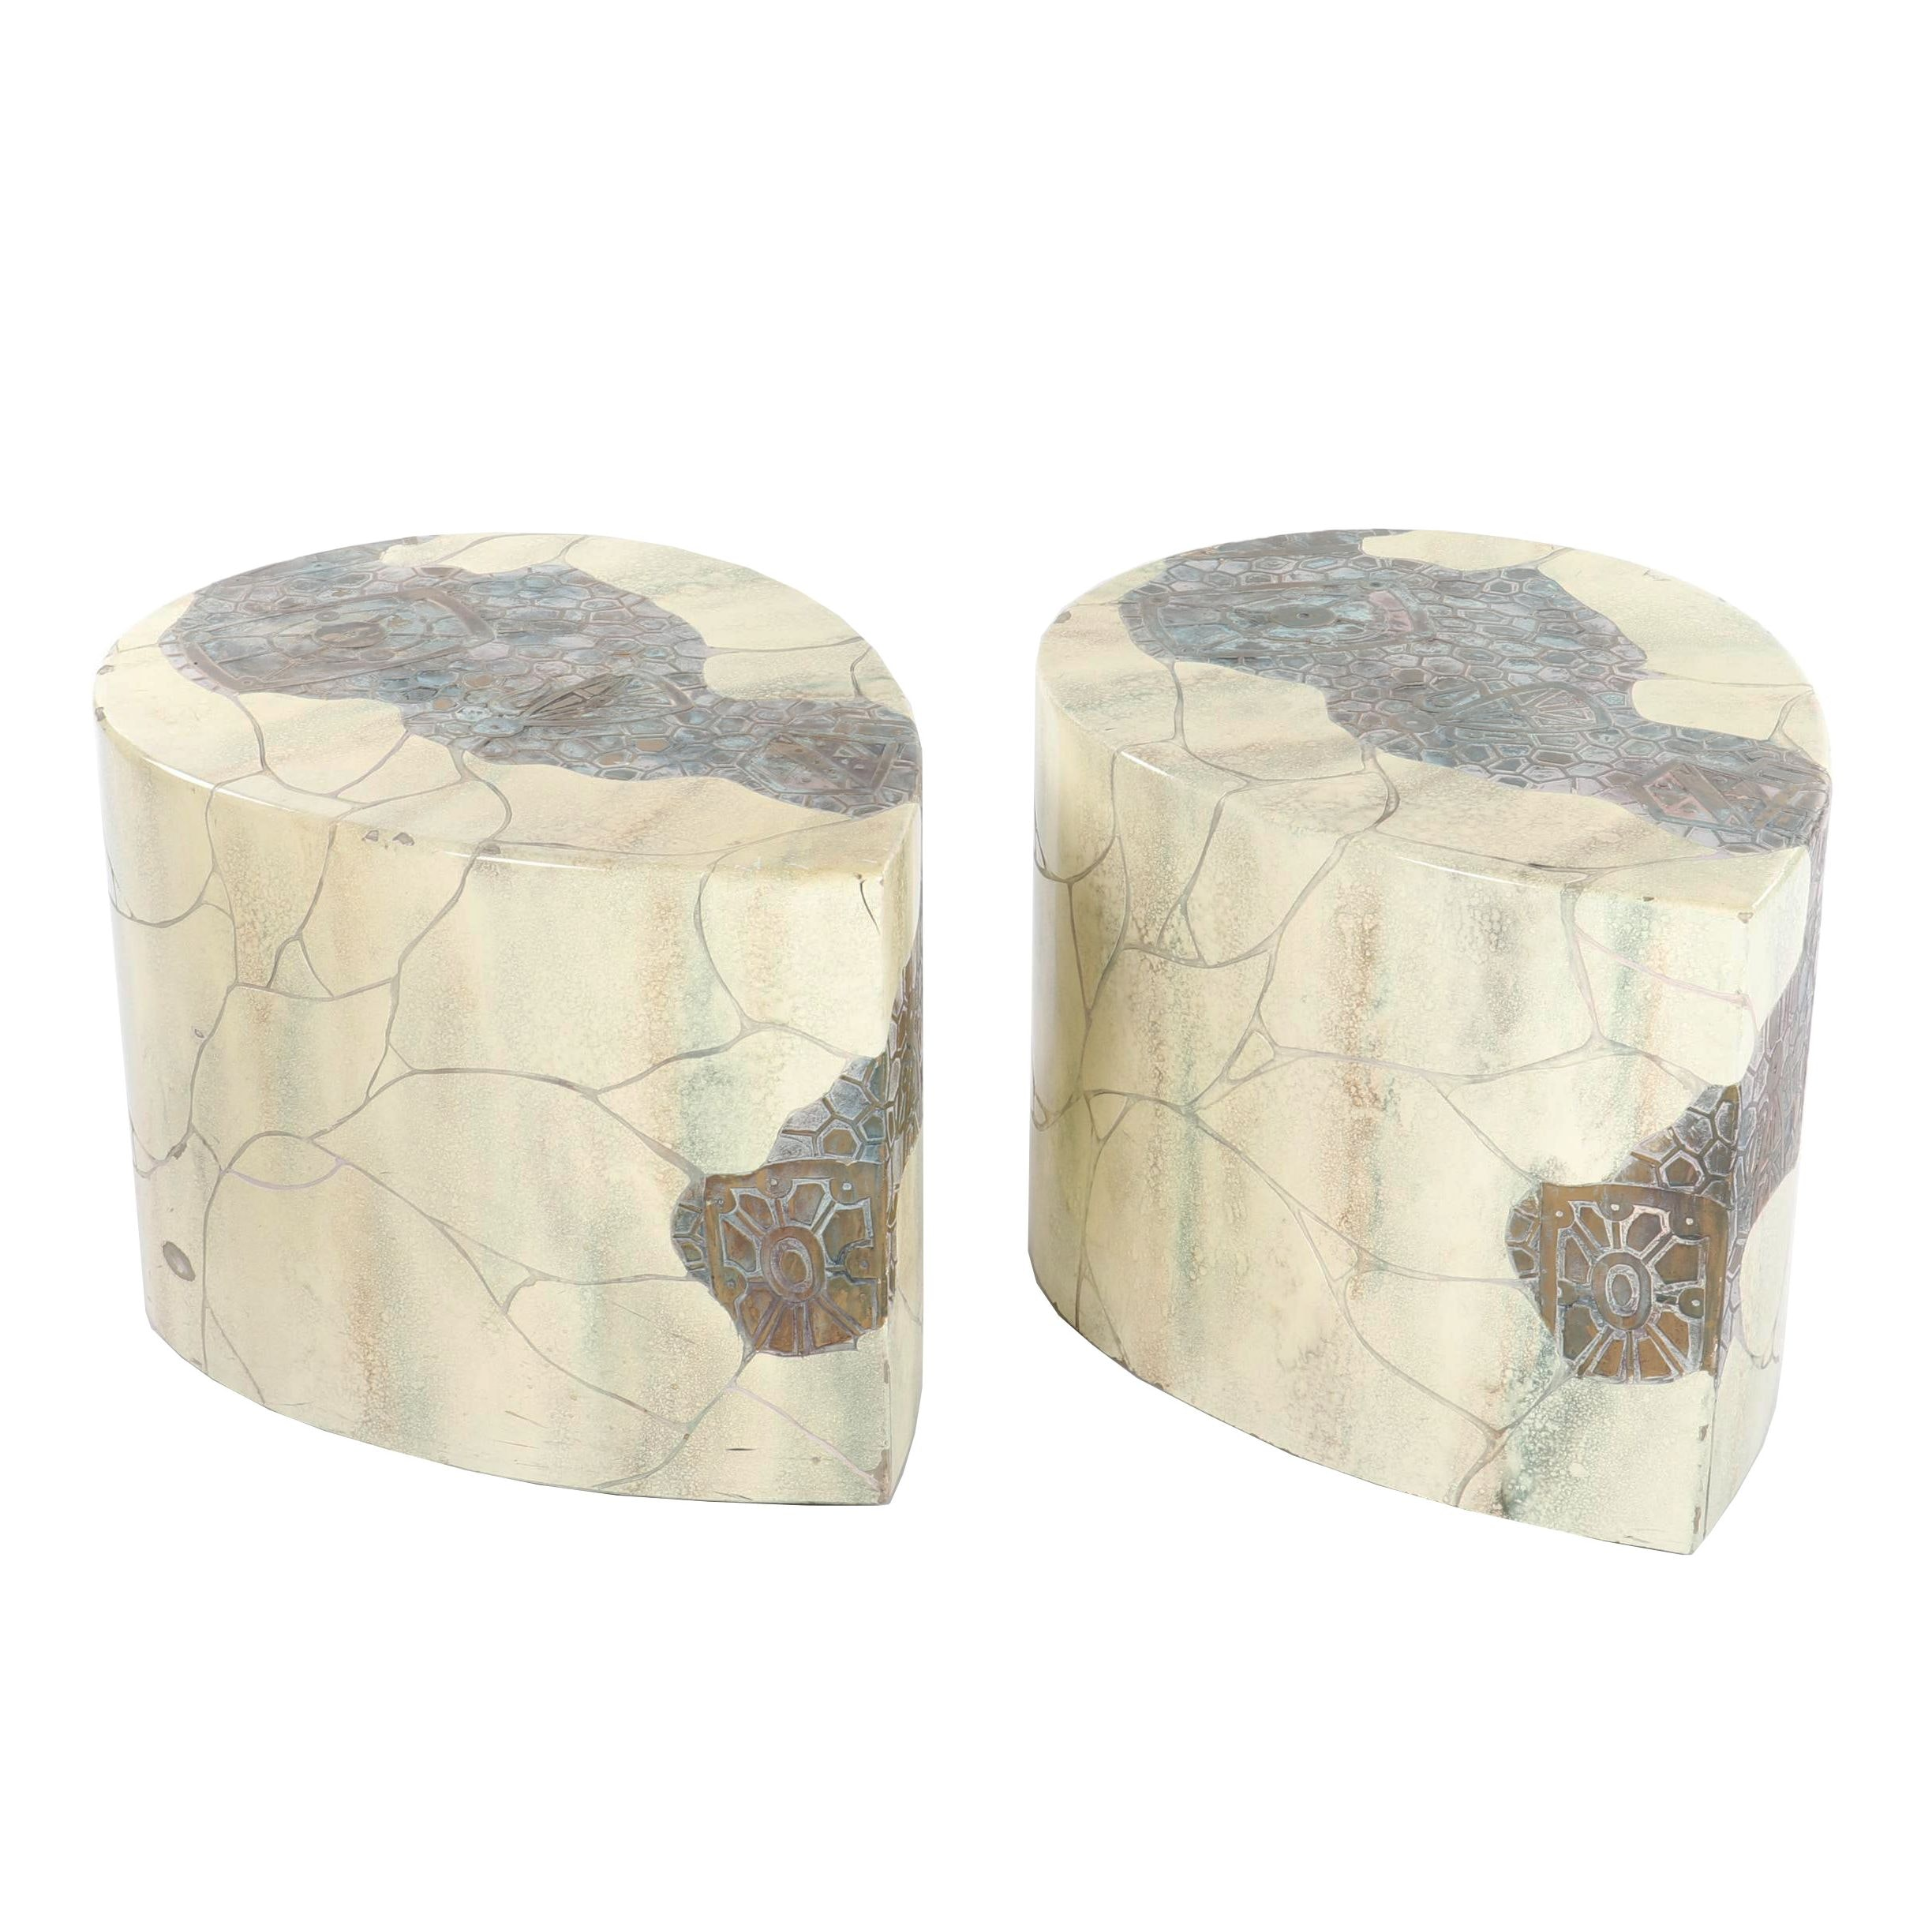 Faux Stone Teardrop Stools, 20th Century